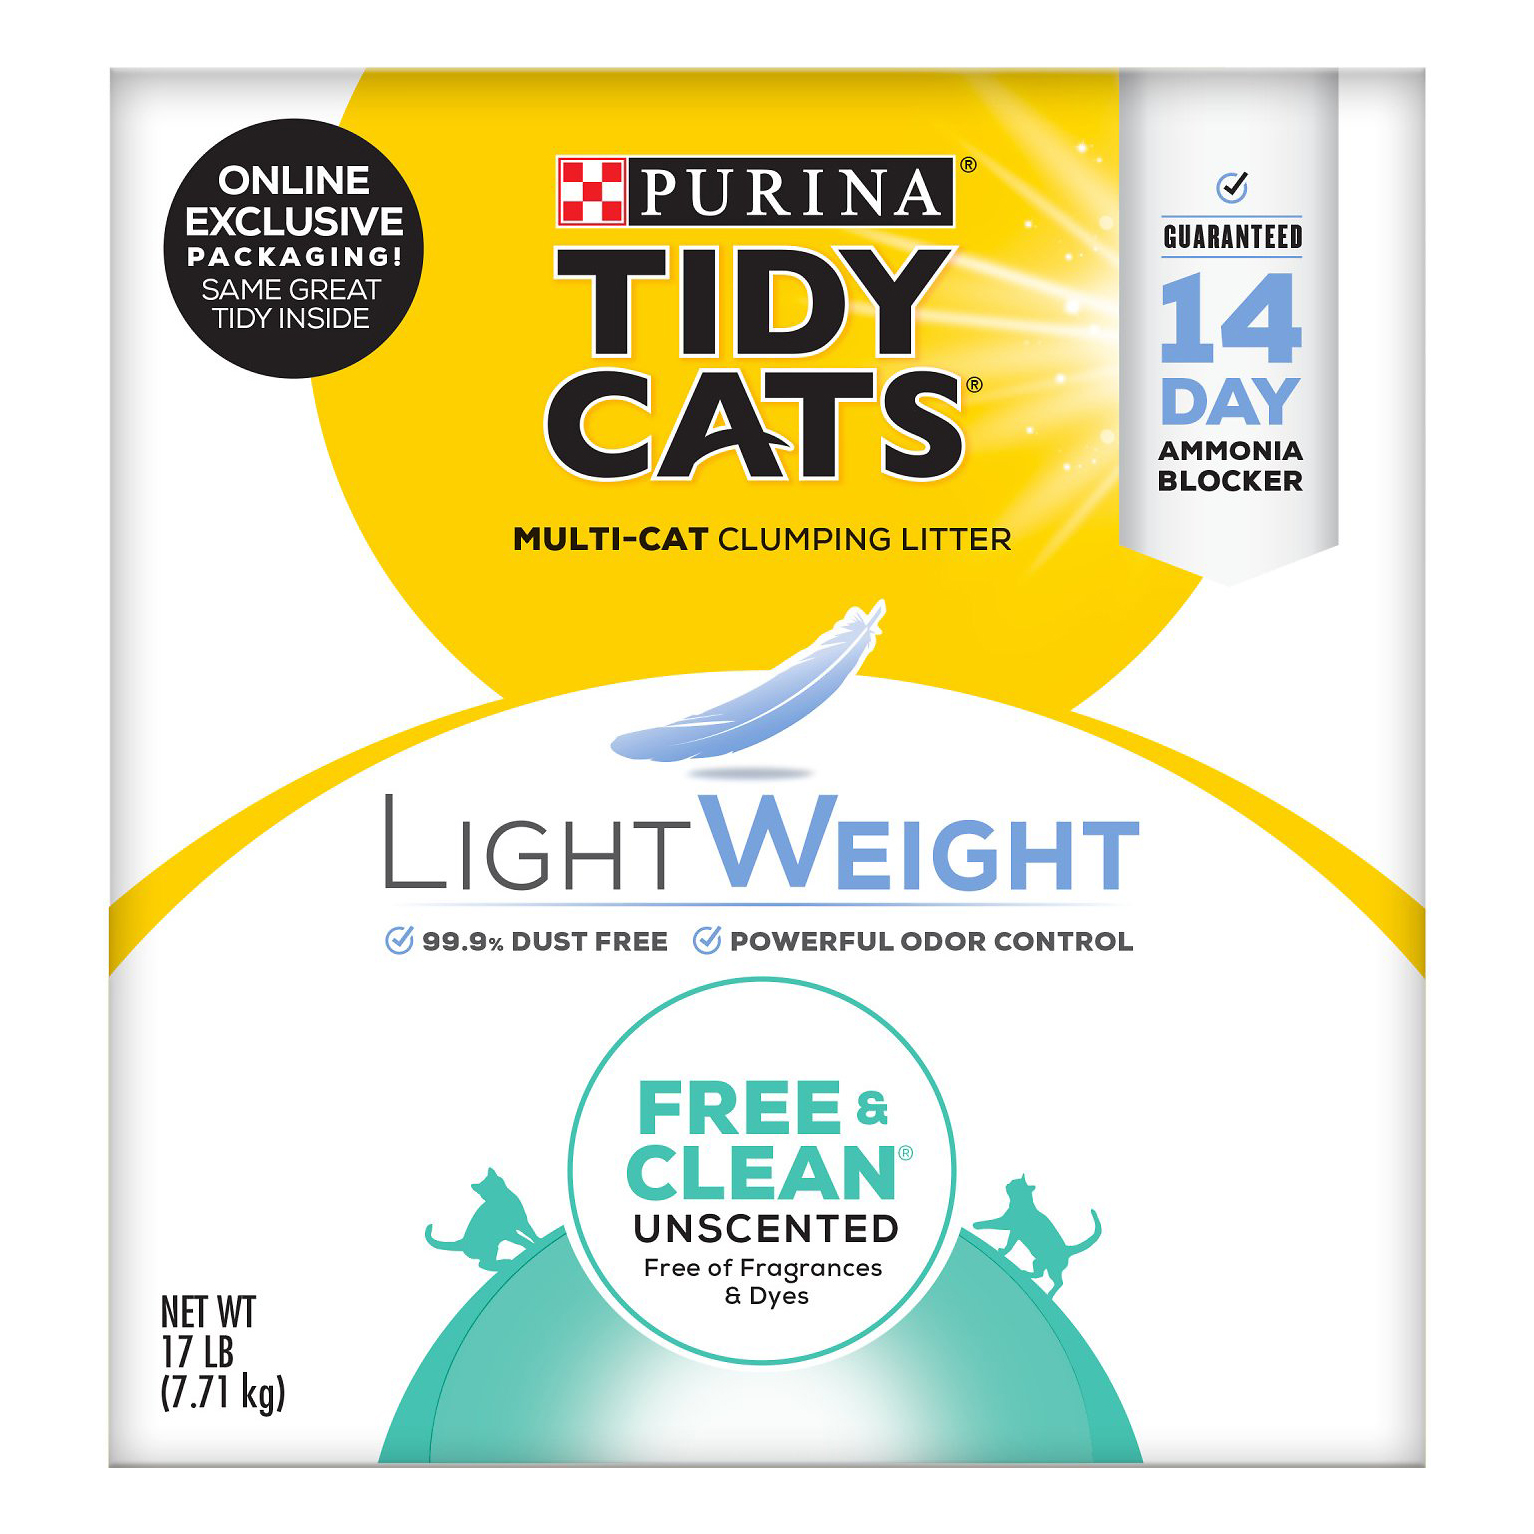 tidy-cats-free-and-clean-lightweight-unscented-clumping-clay-cat-litter